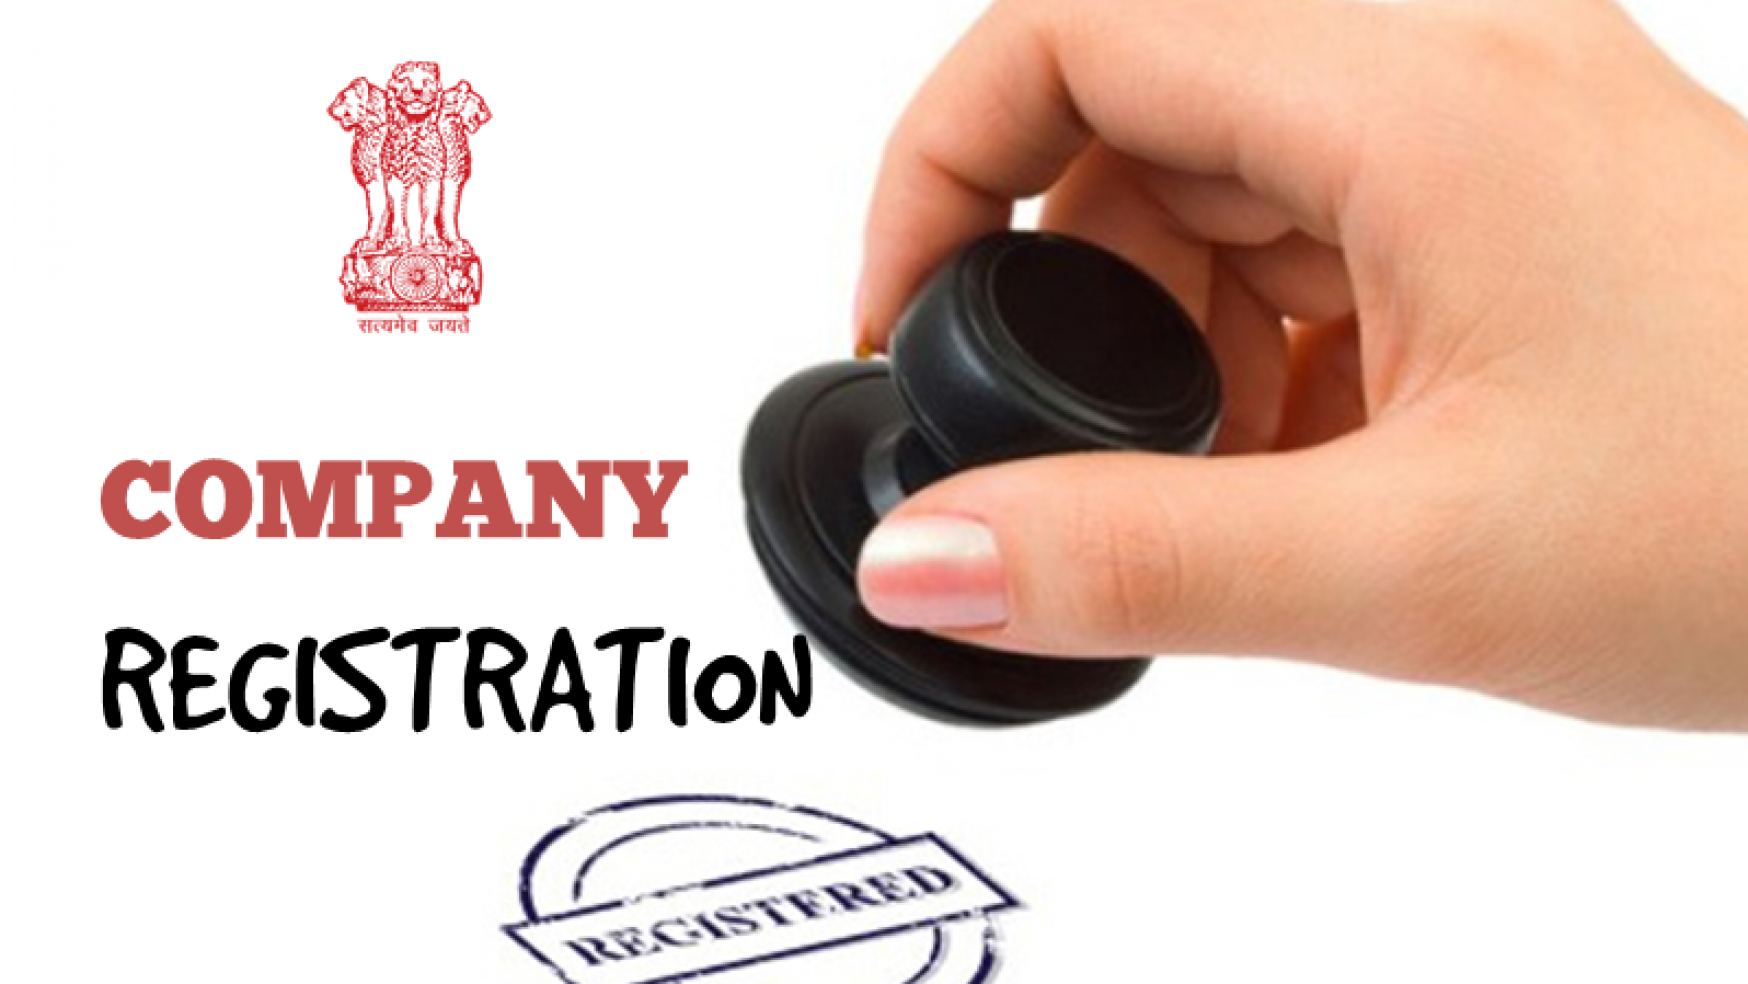 Company Registration - How to Register a Company in India - -Services-Web Services-Delhi